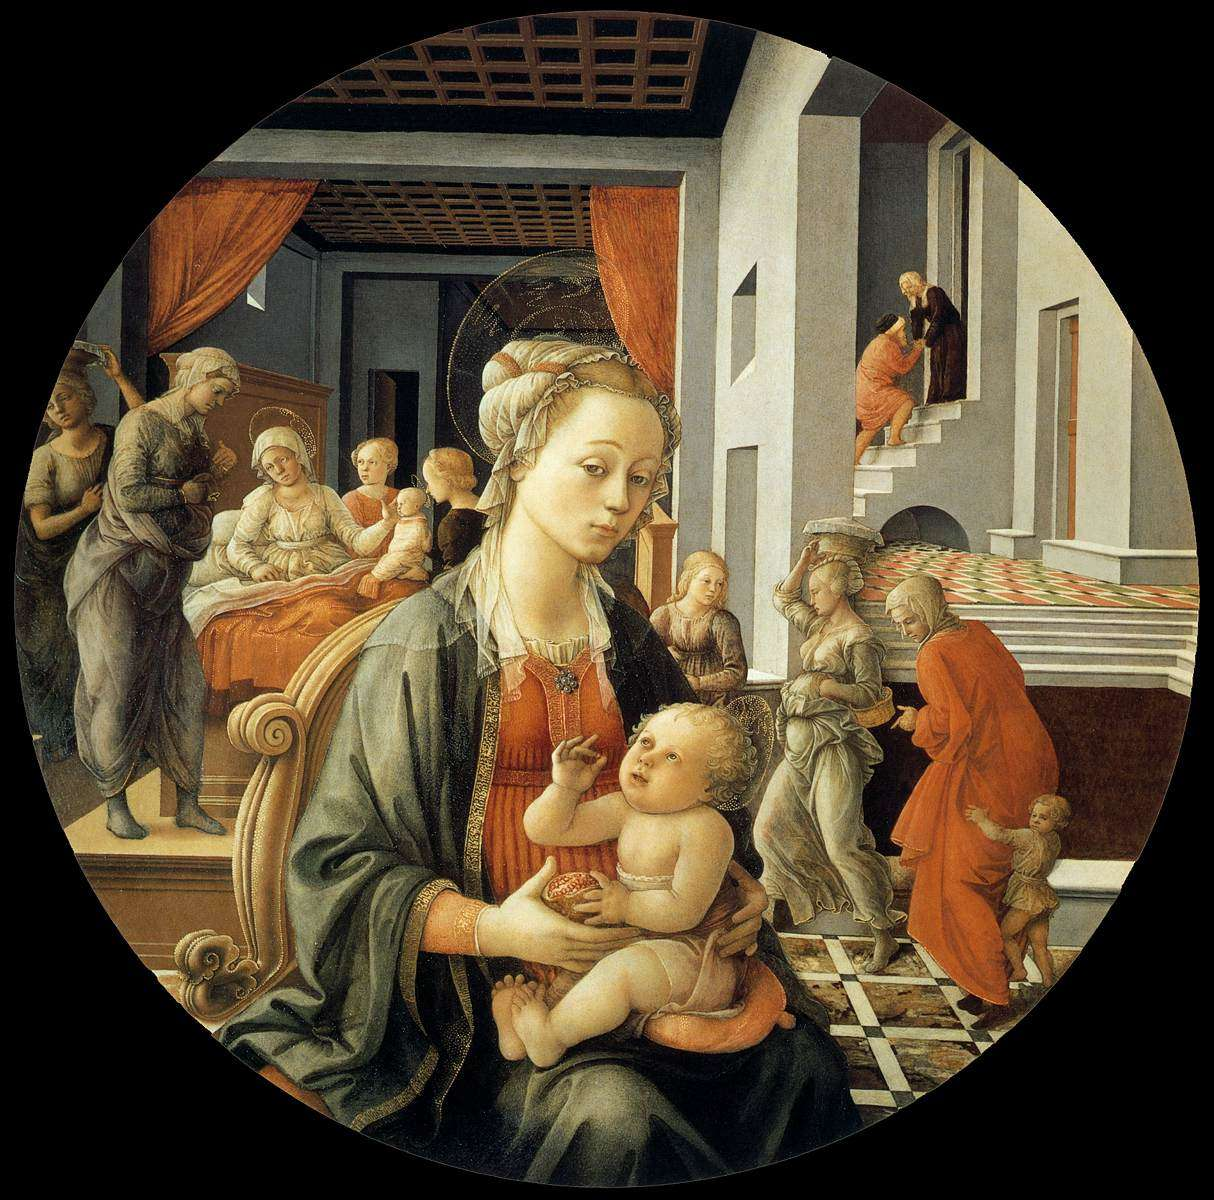 Filippo Lippi, Madonna and Child With Scenes from the Life of St. Anne Italian, 1452 Florence, Pitti Palace